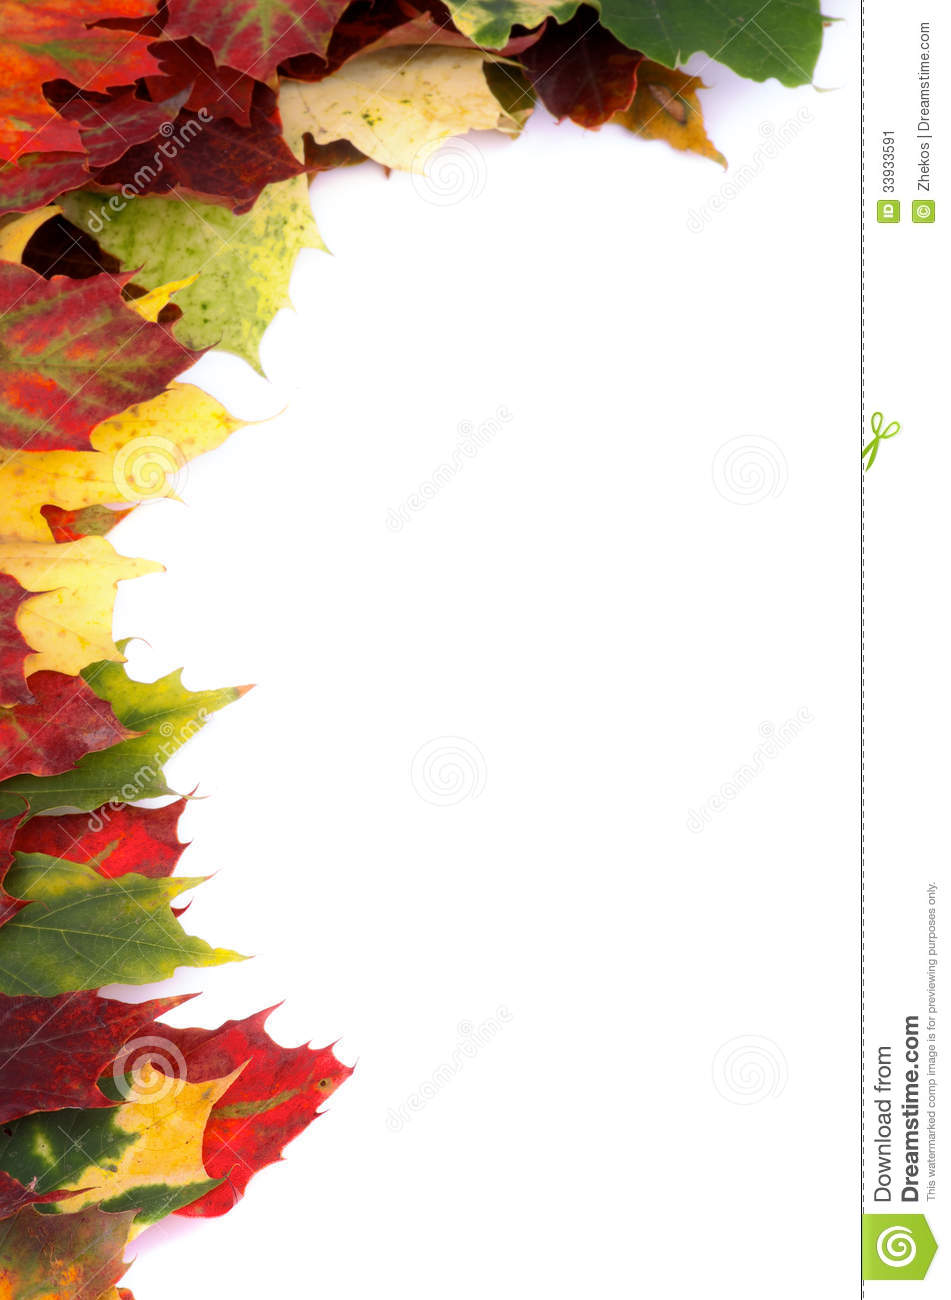 Maple Leaf Border Clipart - Clipart Suggest